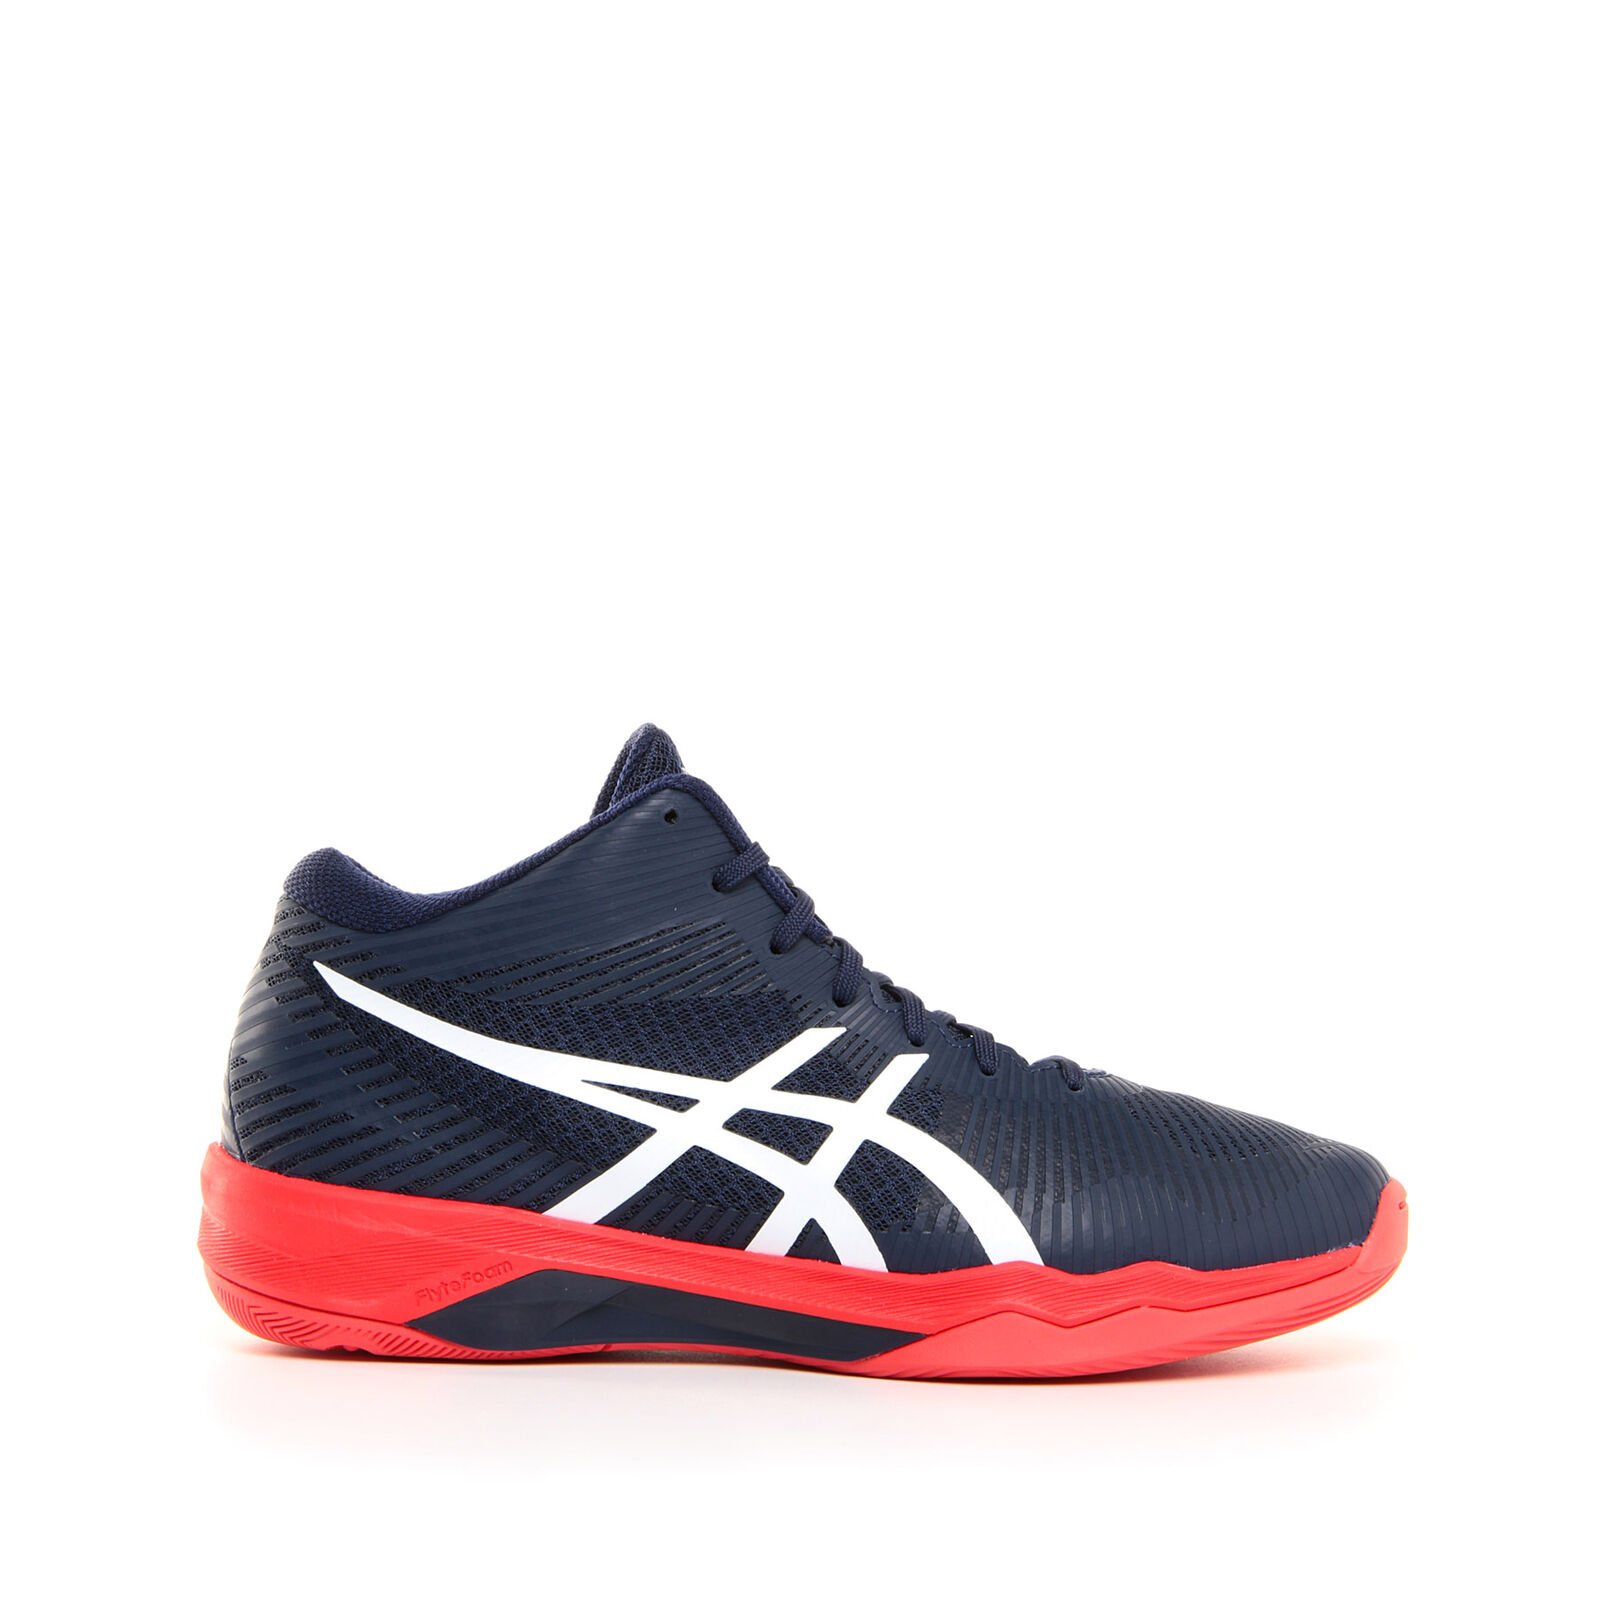 ASICS VOLLEYBALL ELITE FF MT SCHUHE VOLLEYBALL HERREN B700N B700N B700N 400 eef85a